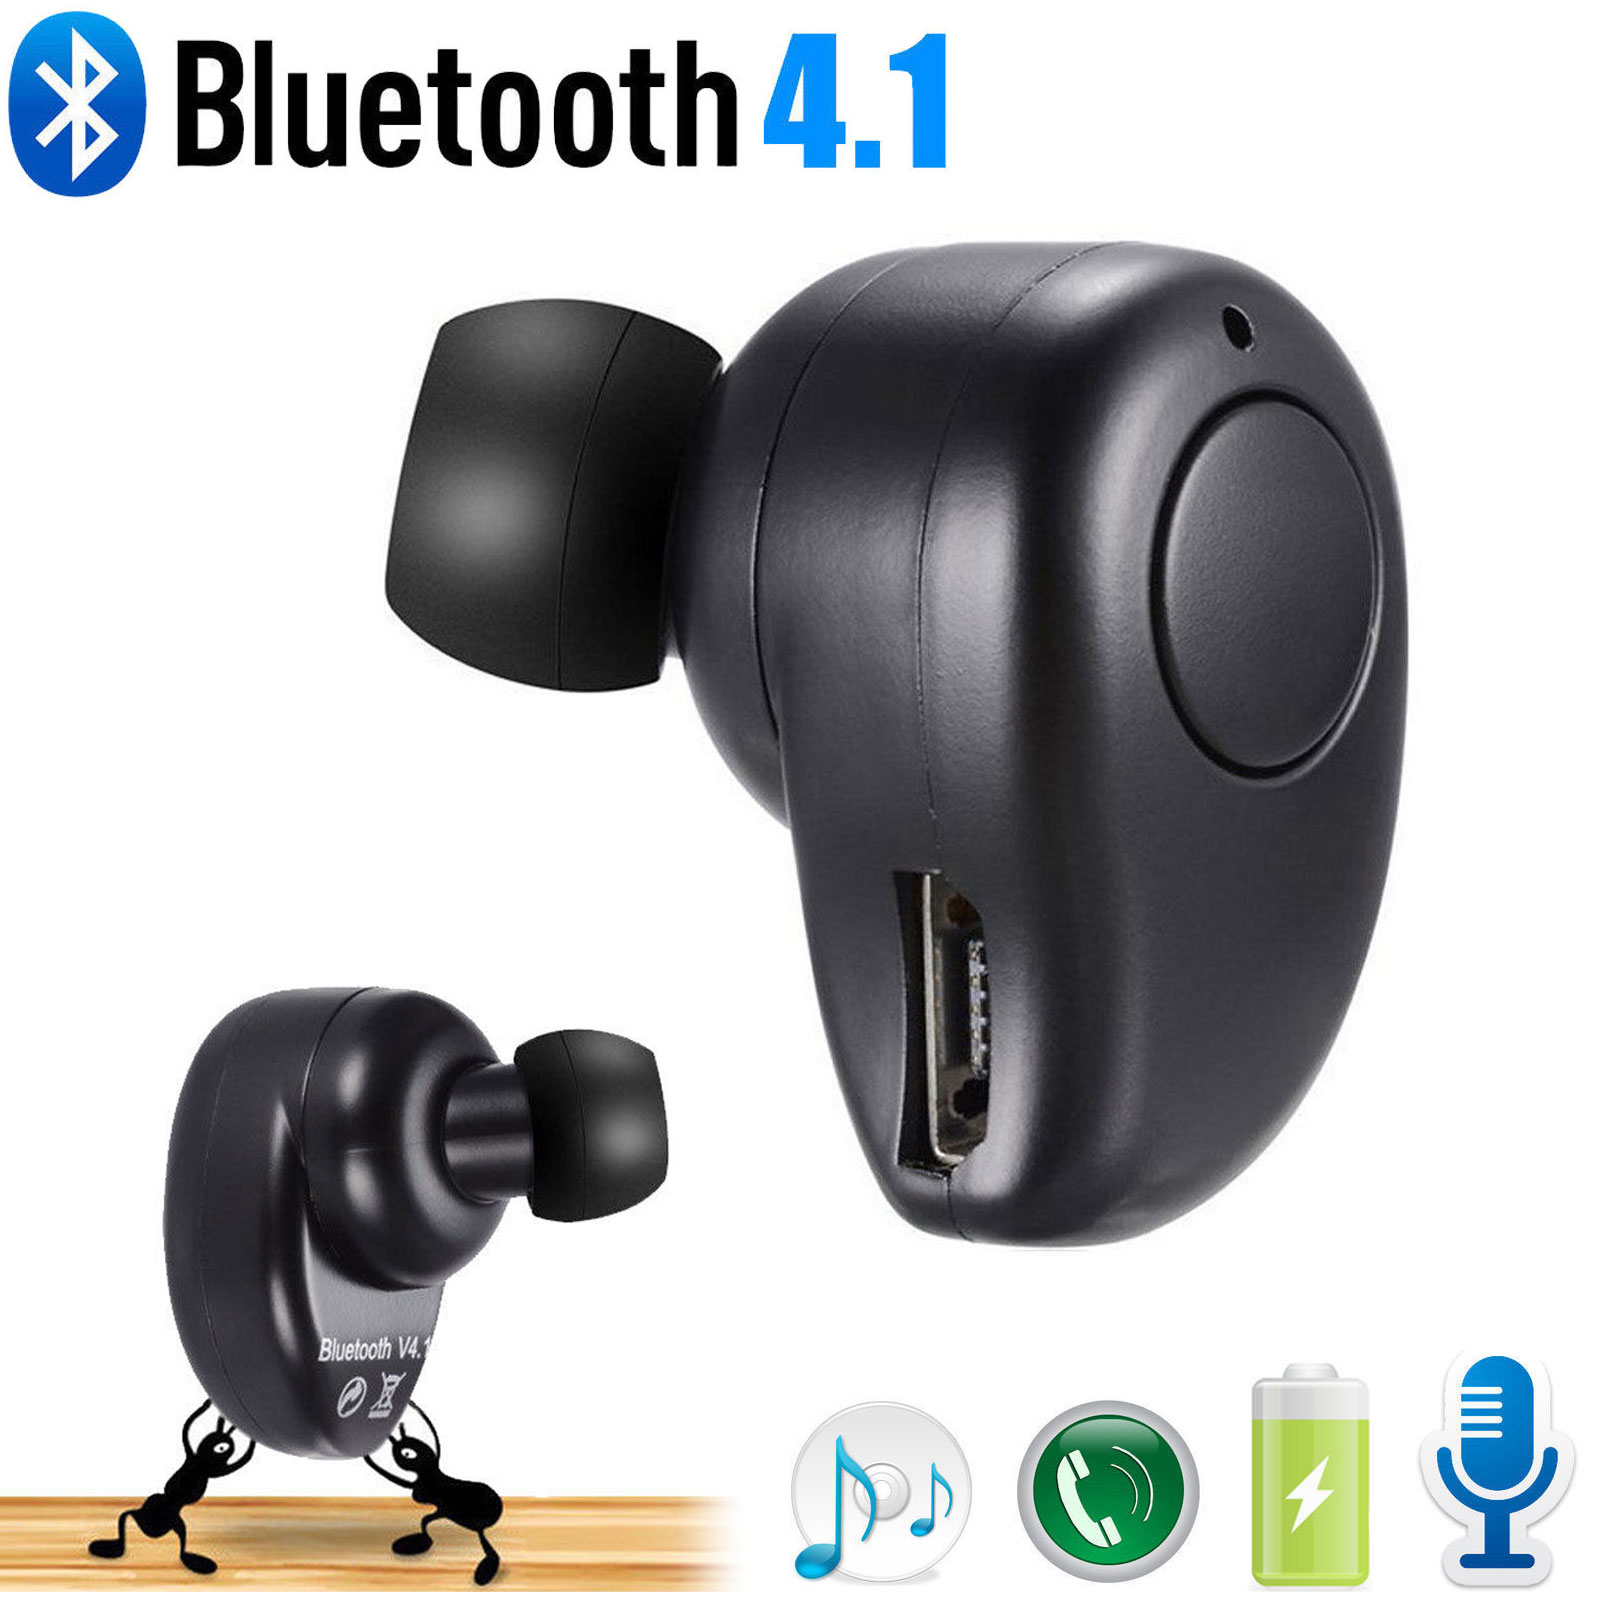 Wireless Bluetooth Earbud, Ultra Mini Invisible Single Earset, In-Ear Secret Spy Tiny Hidden Earphone with Microphone